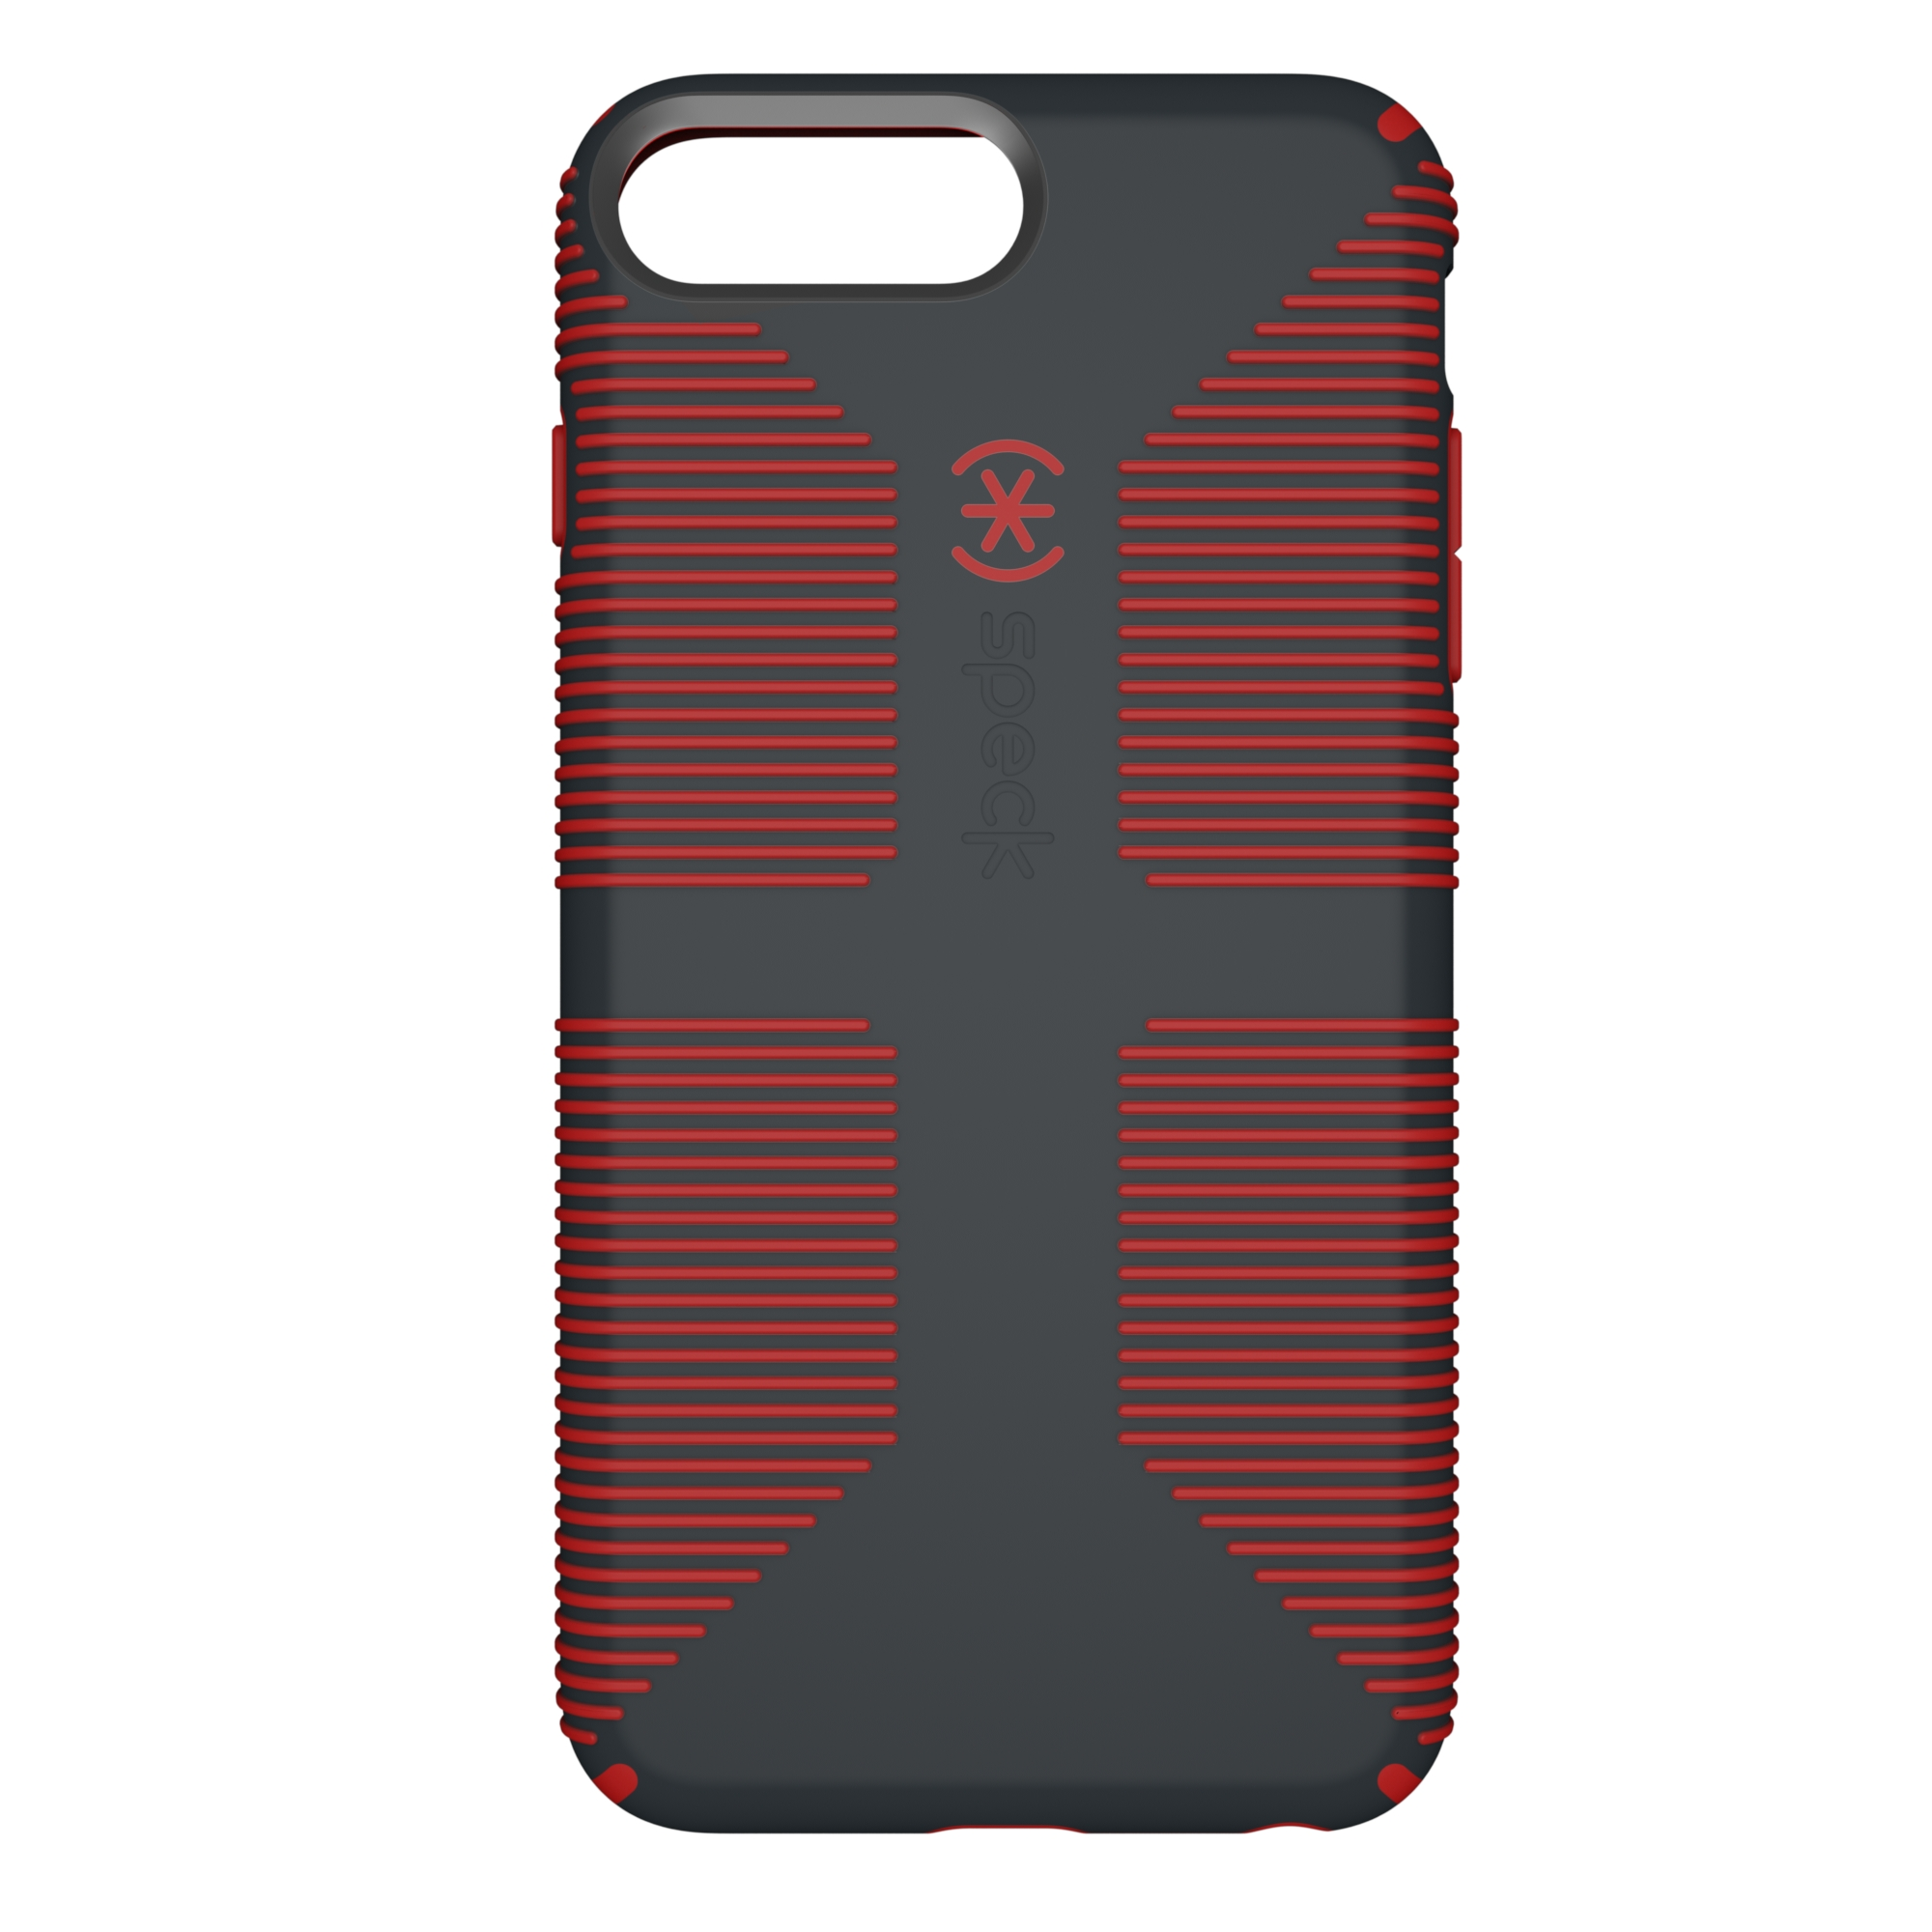 Speck CandyShell Grip Case for Apple iPhone 8 Plus, iPhone 7 Plus, and iPhone 6 Plus, Gray/Red